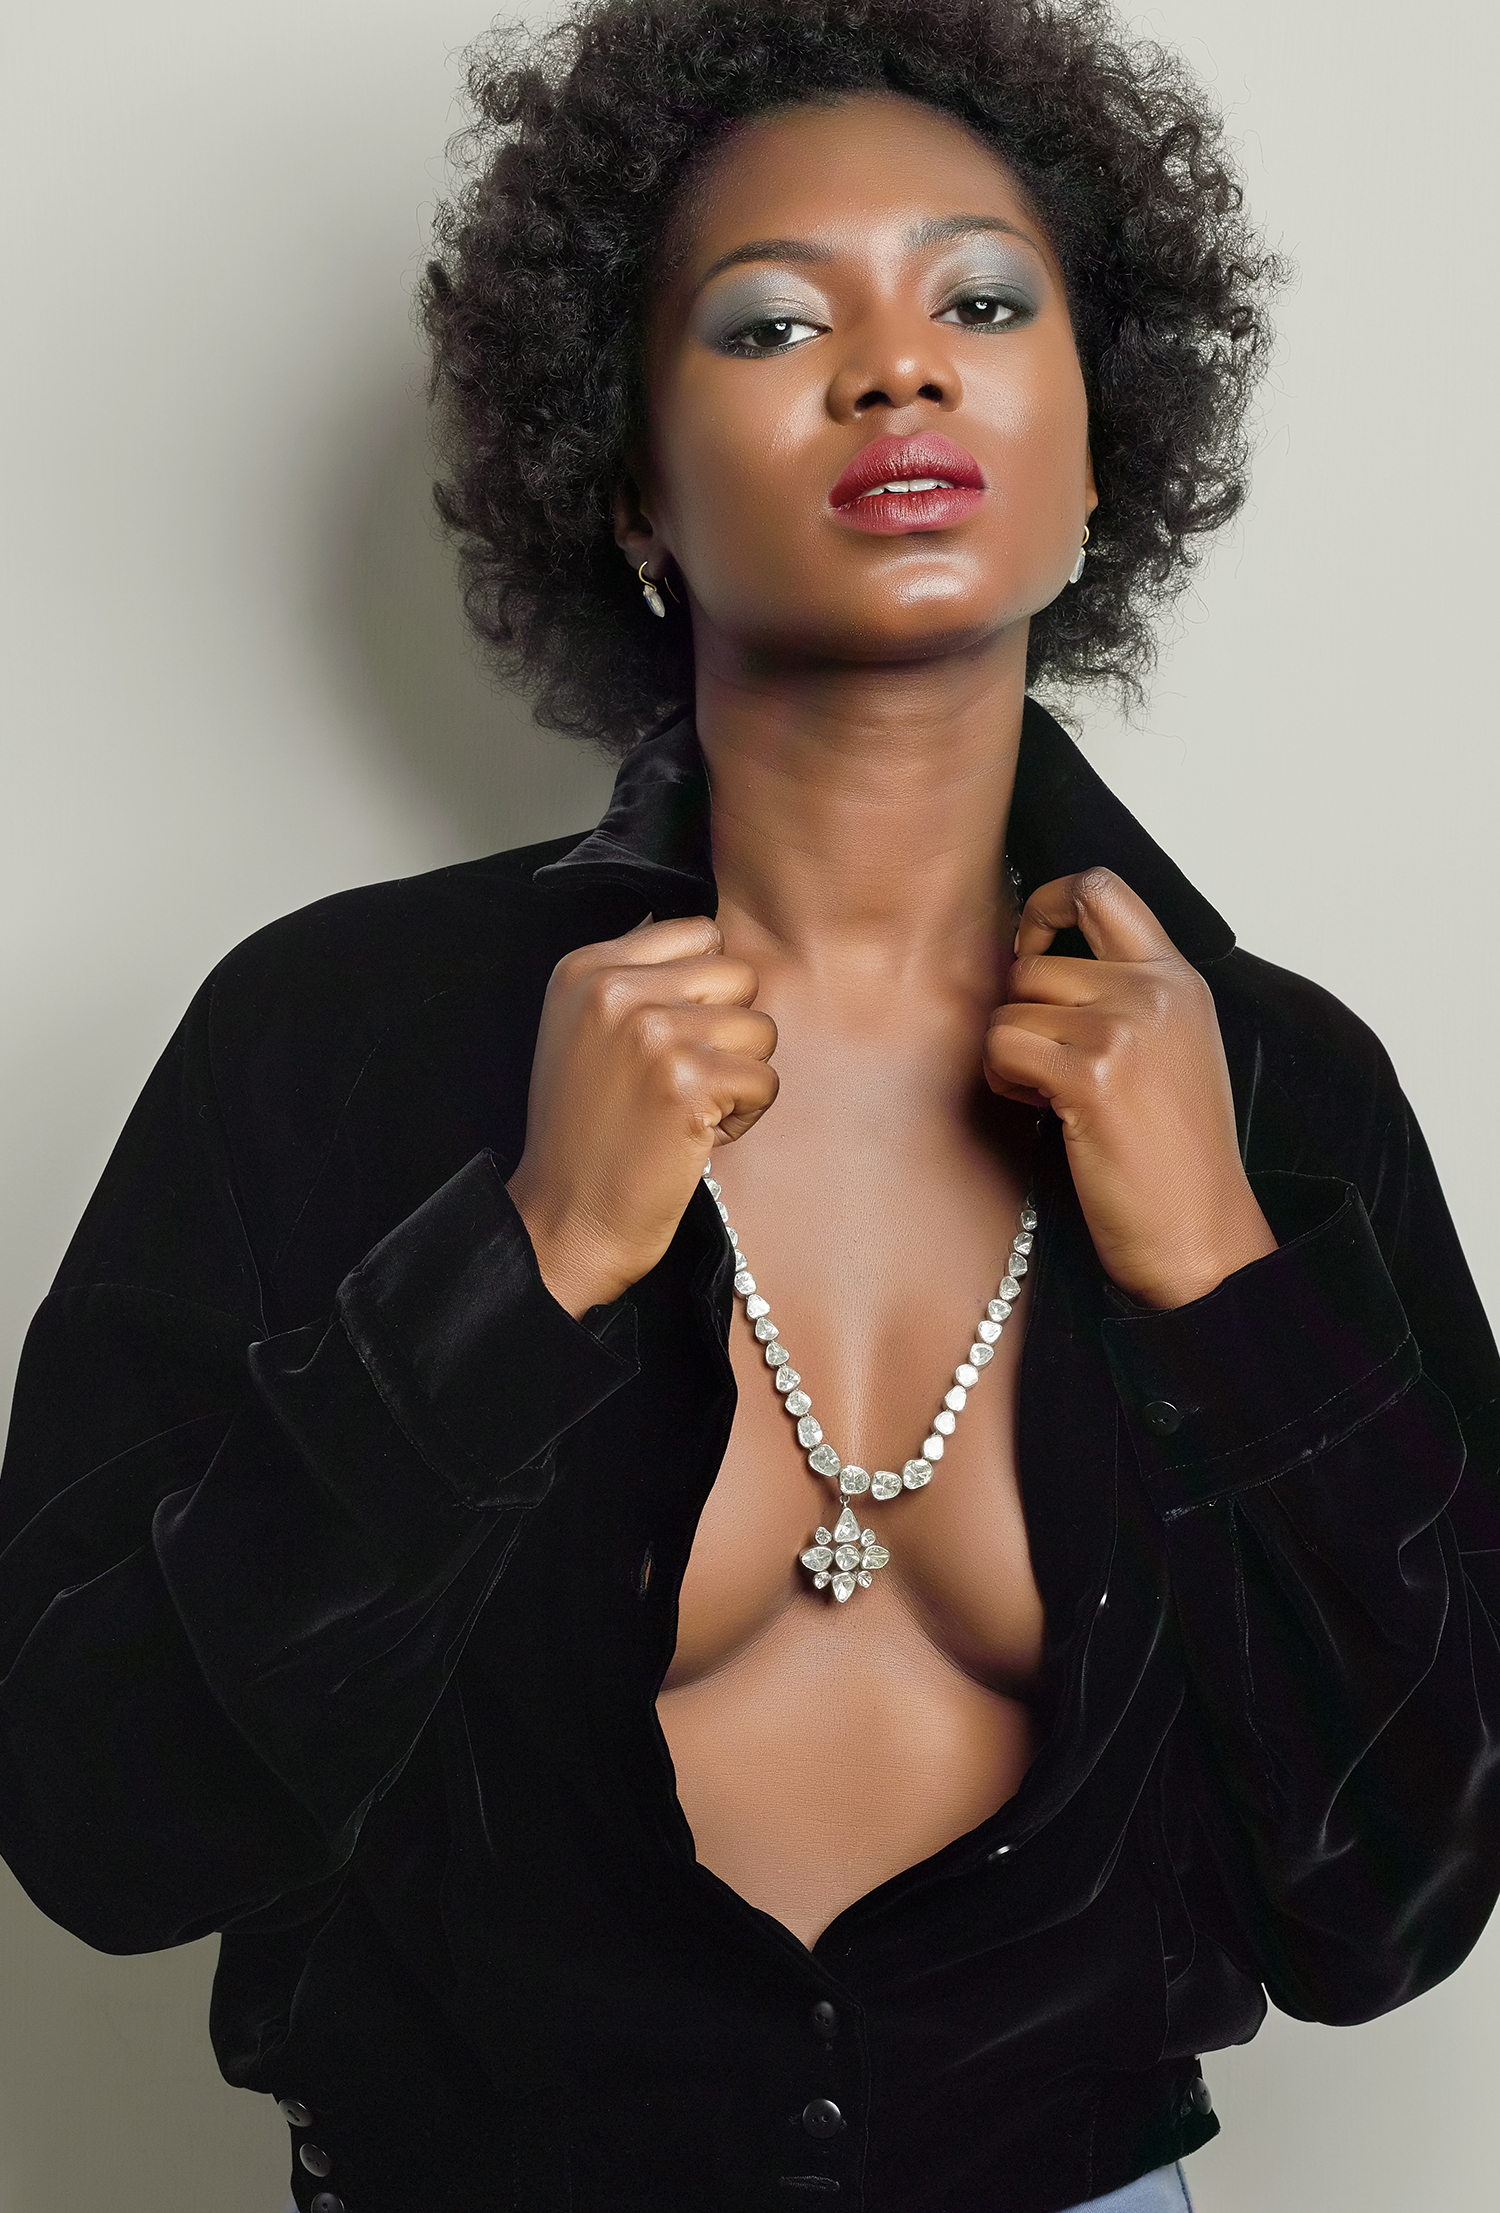 powerful strong pose by model wearing jewellery statement diamond necklace beautiful lighting shot in london location by howlett photography